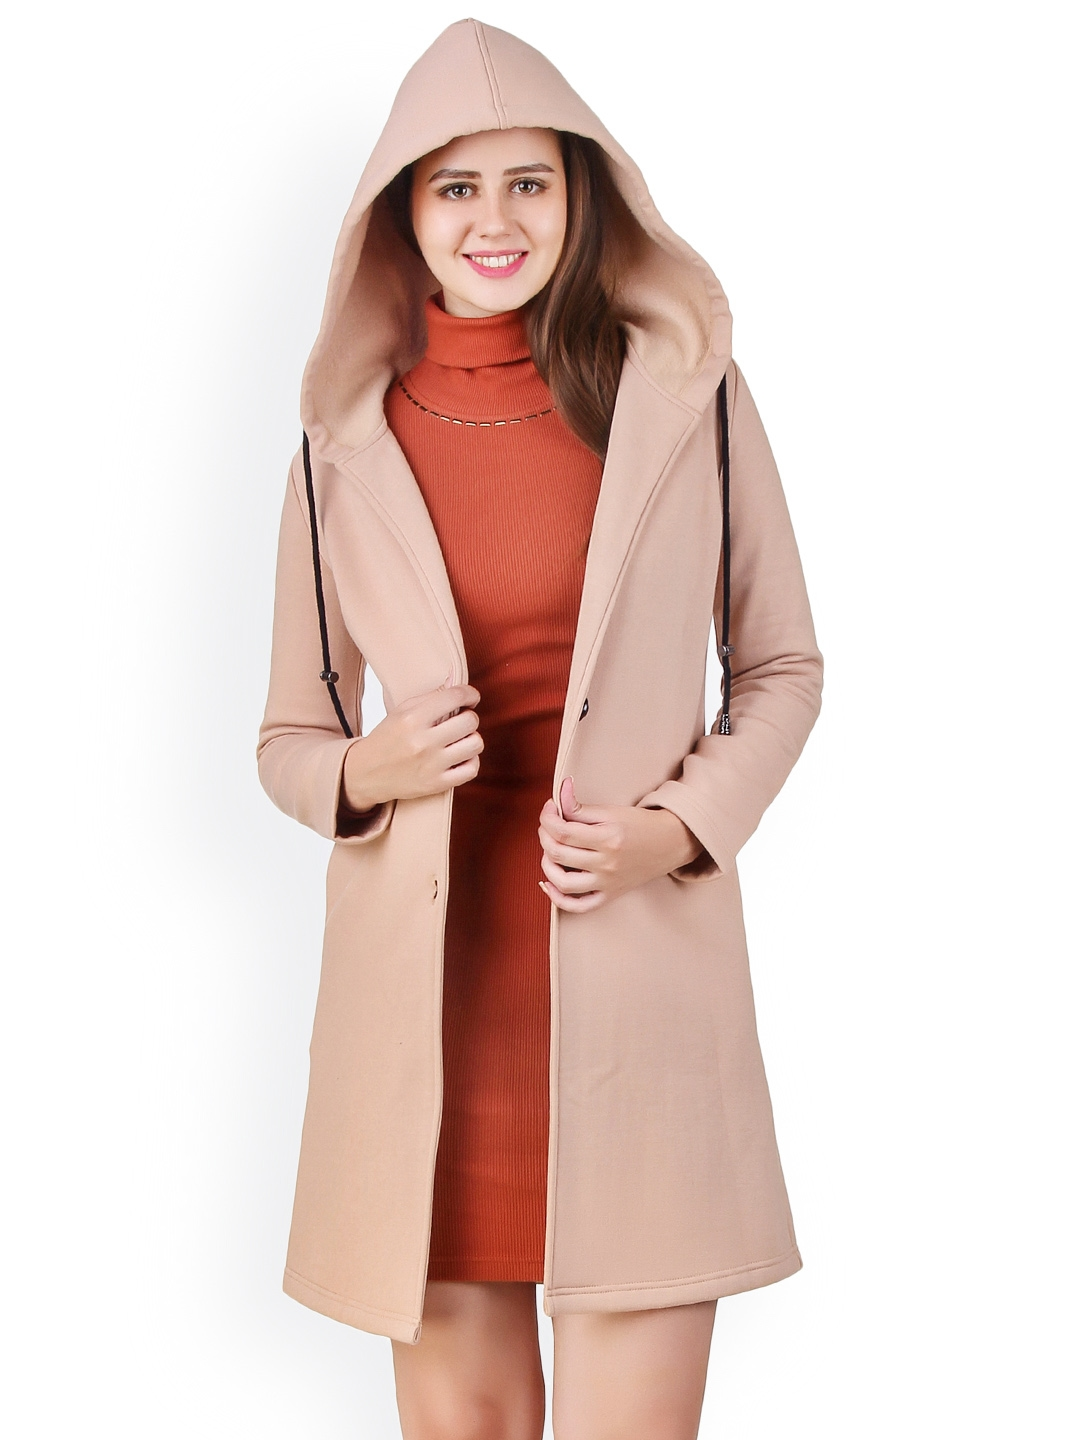 Women's Coats India | Buy Coats for Women Online in India